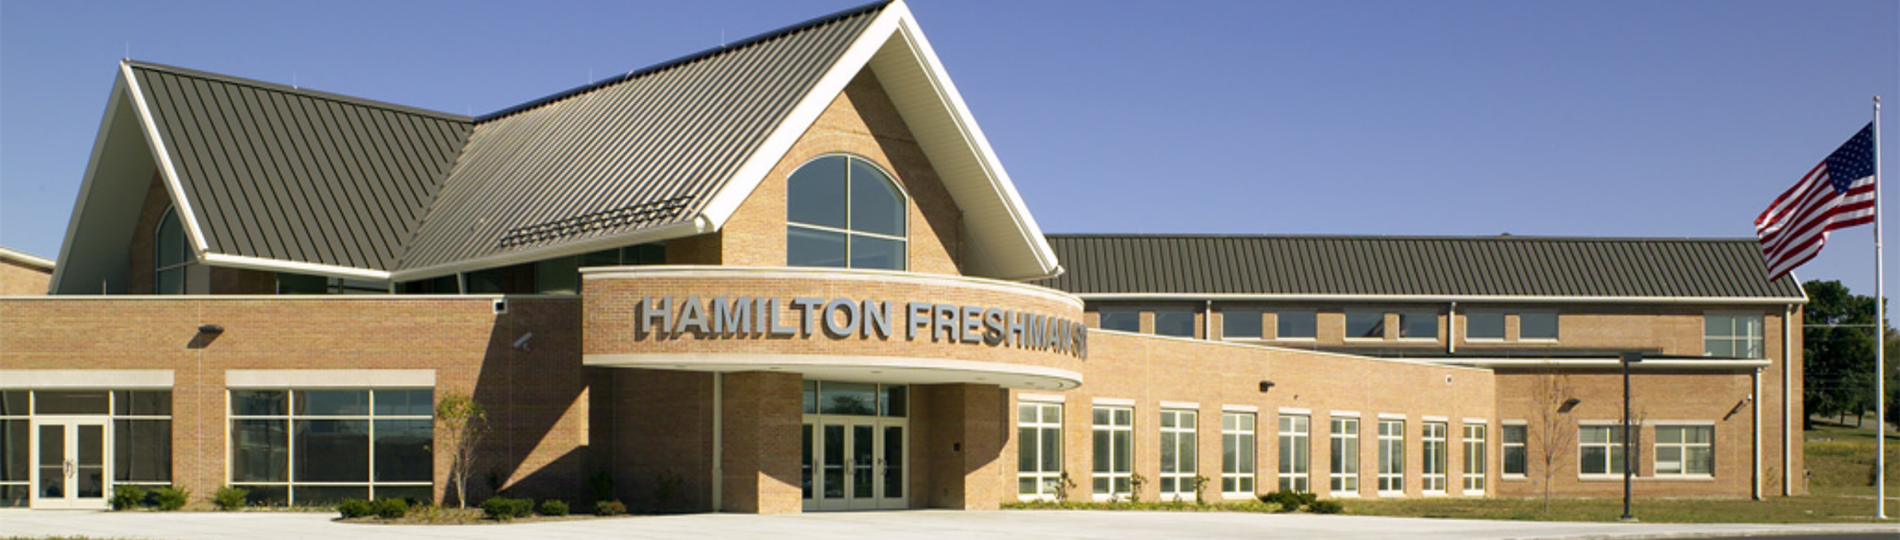 Freshman front entrance header